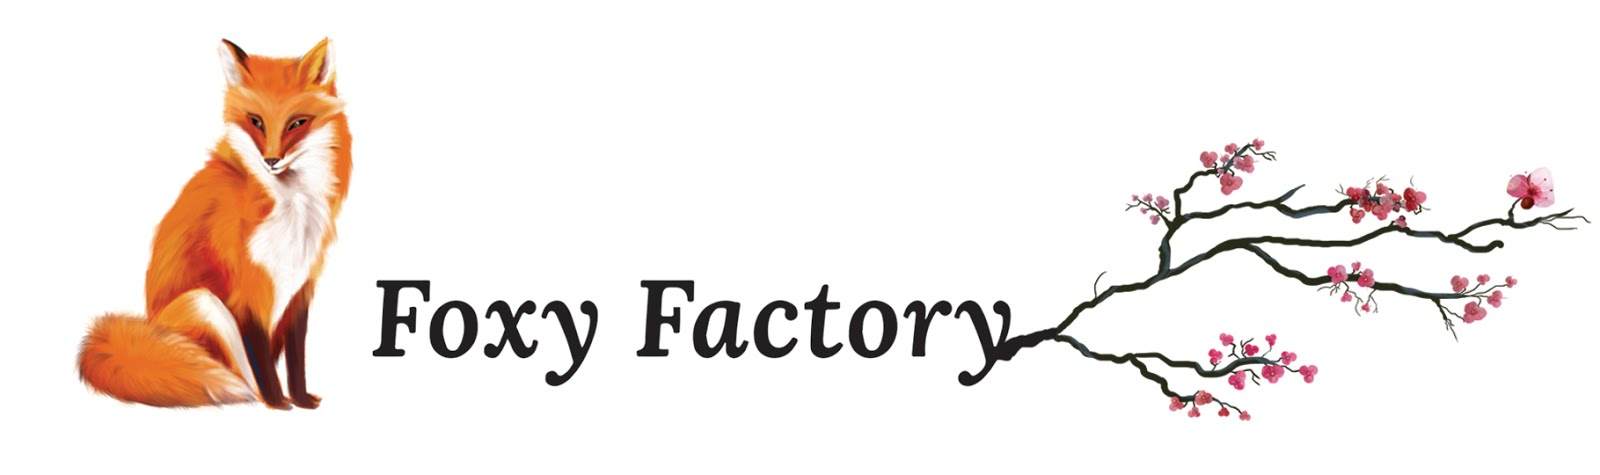 Foxy Factory